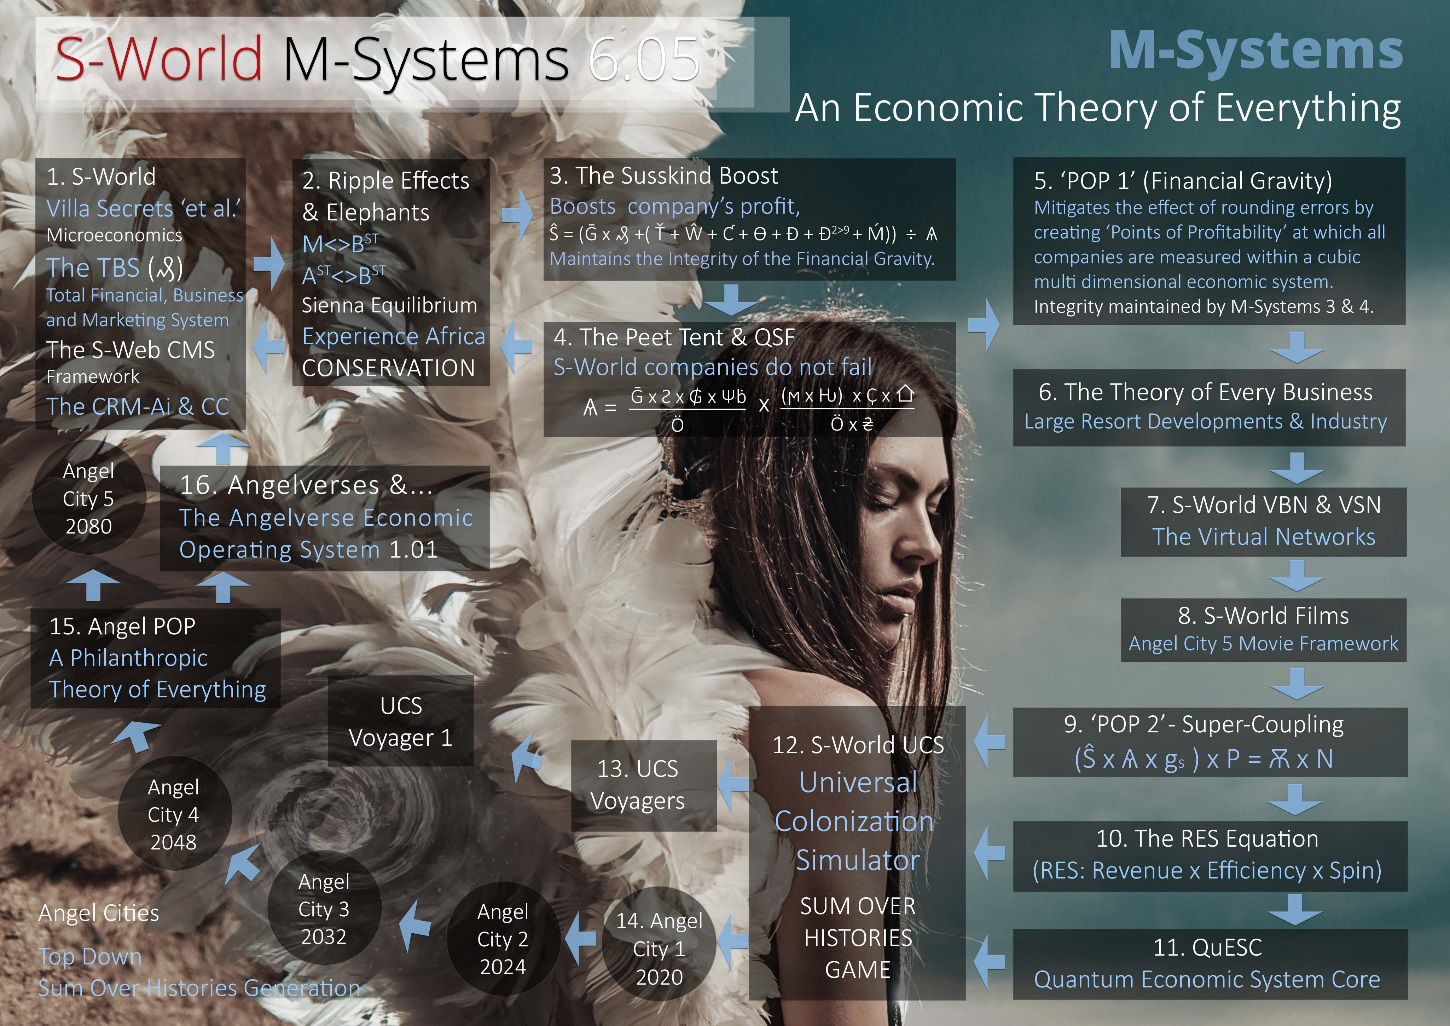 s-world m-systems - An Economic Theory of Everything